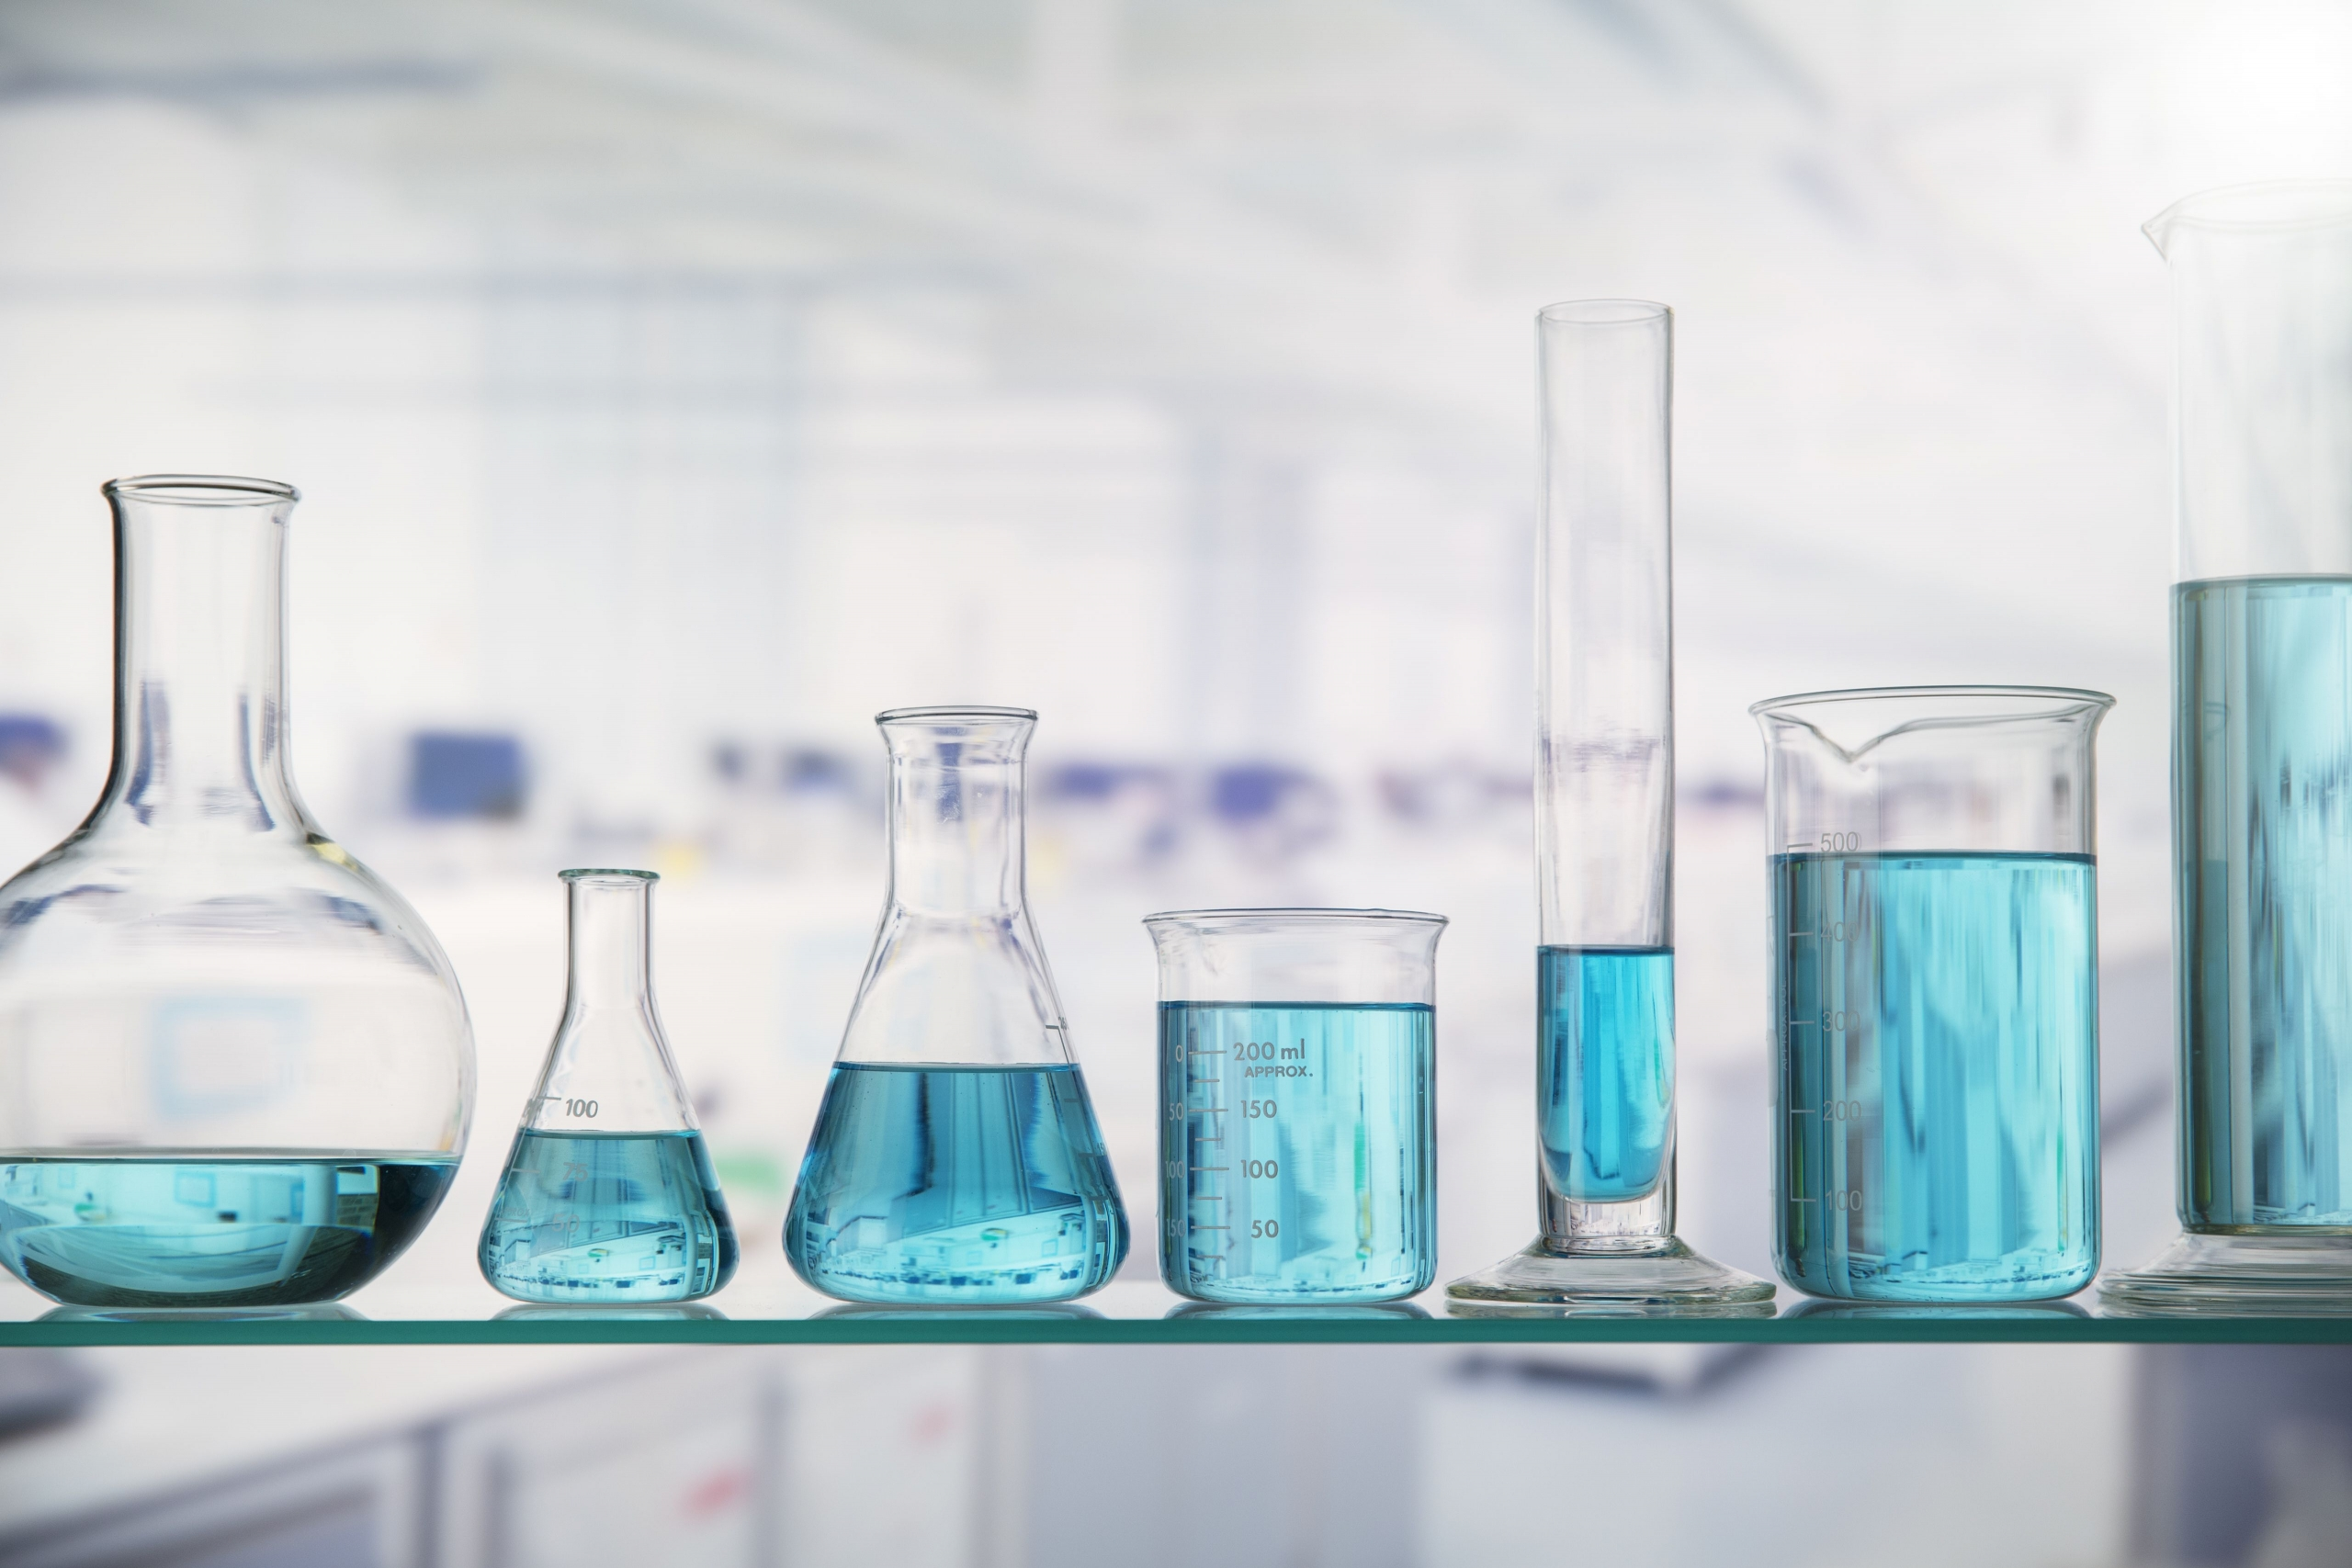 Chemical Abstracts Service data center relocation provided by Altus